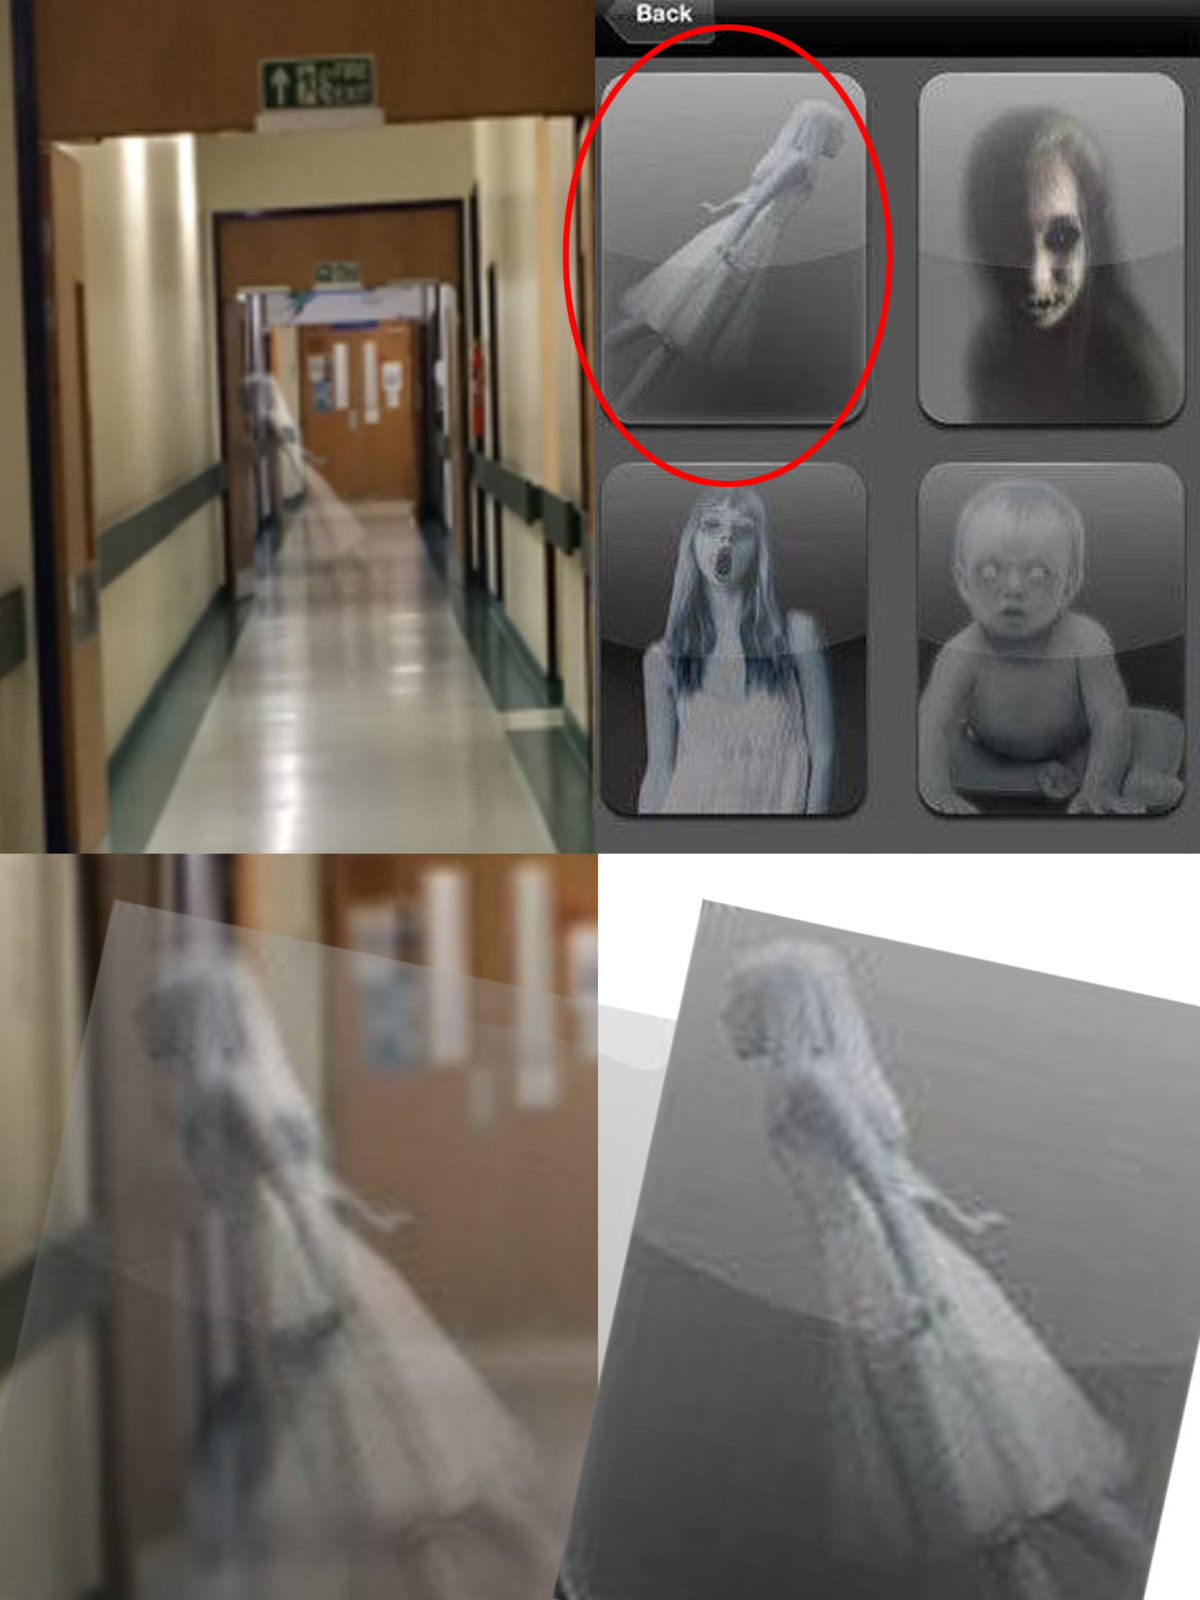 Andrew Milburn Fake Hostpital Ghost Photo 2015.